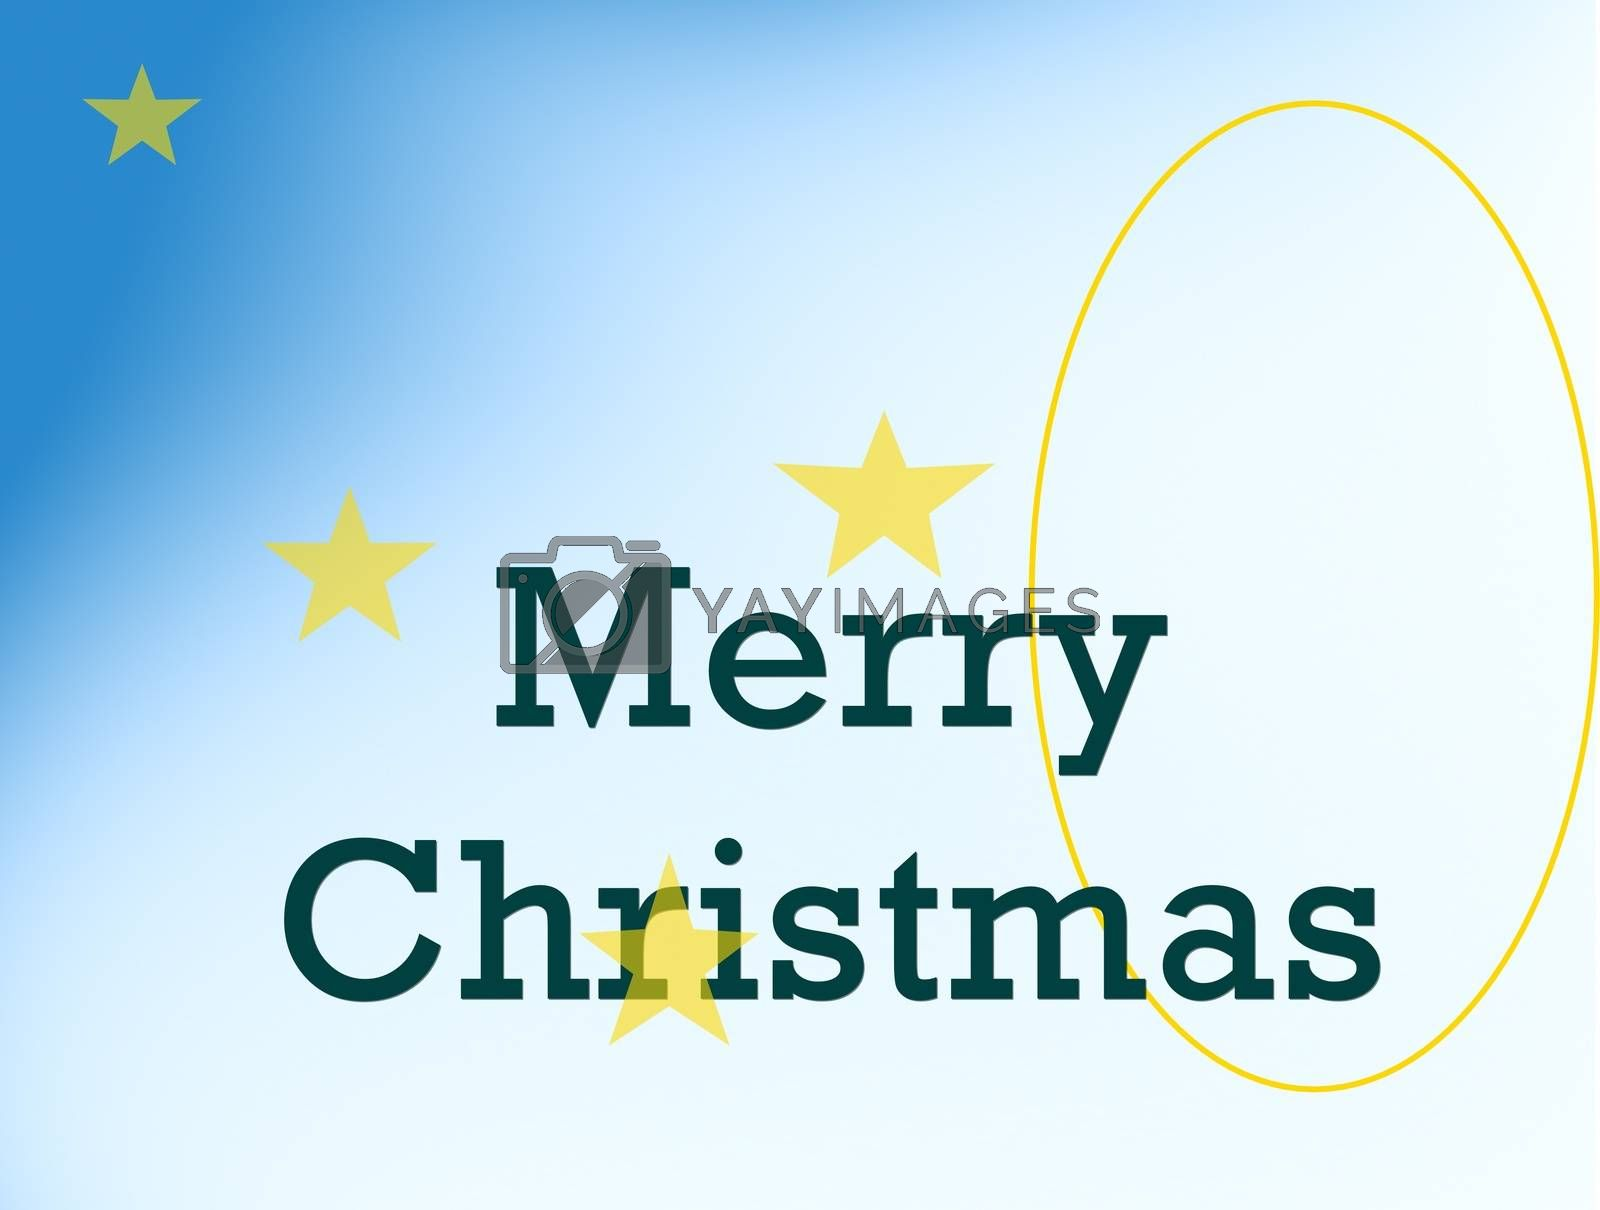 picture of a Merry Christmas card on blue white gradient background